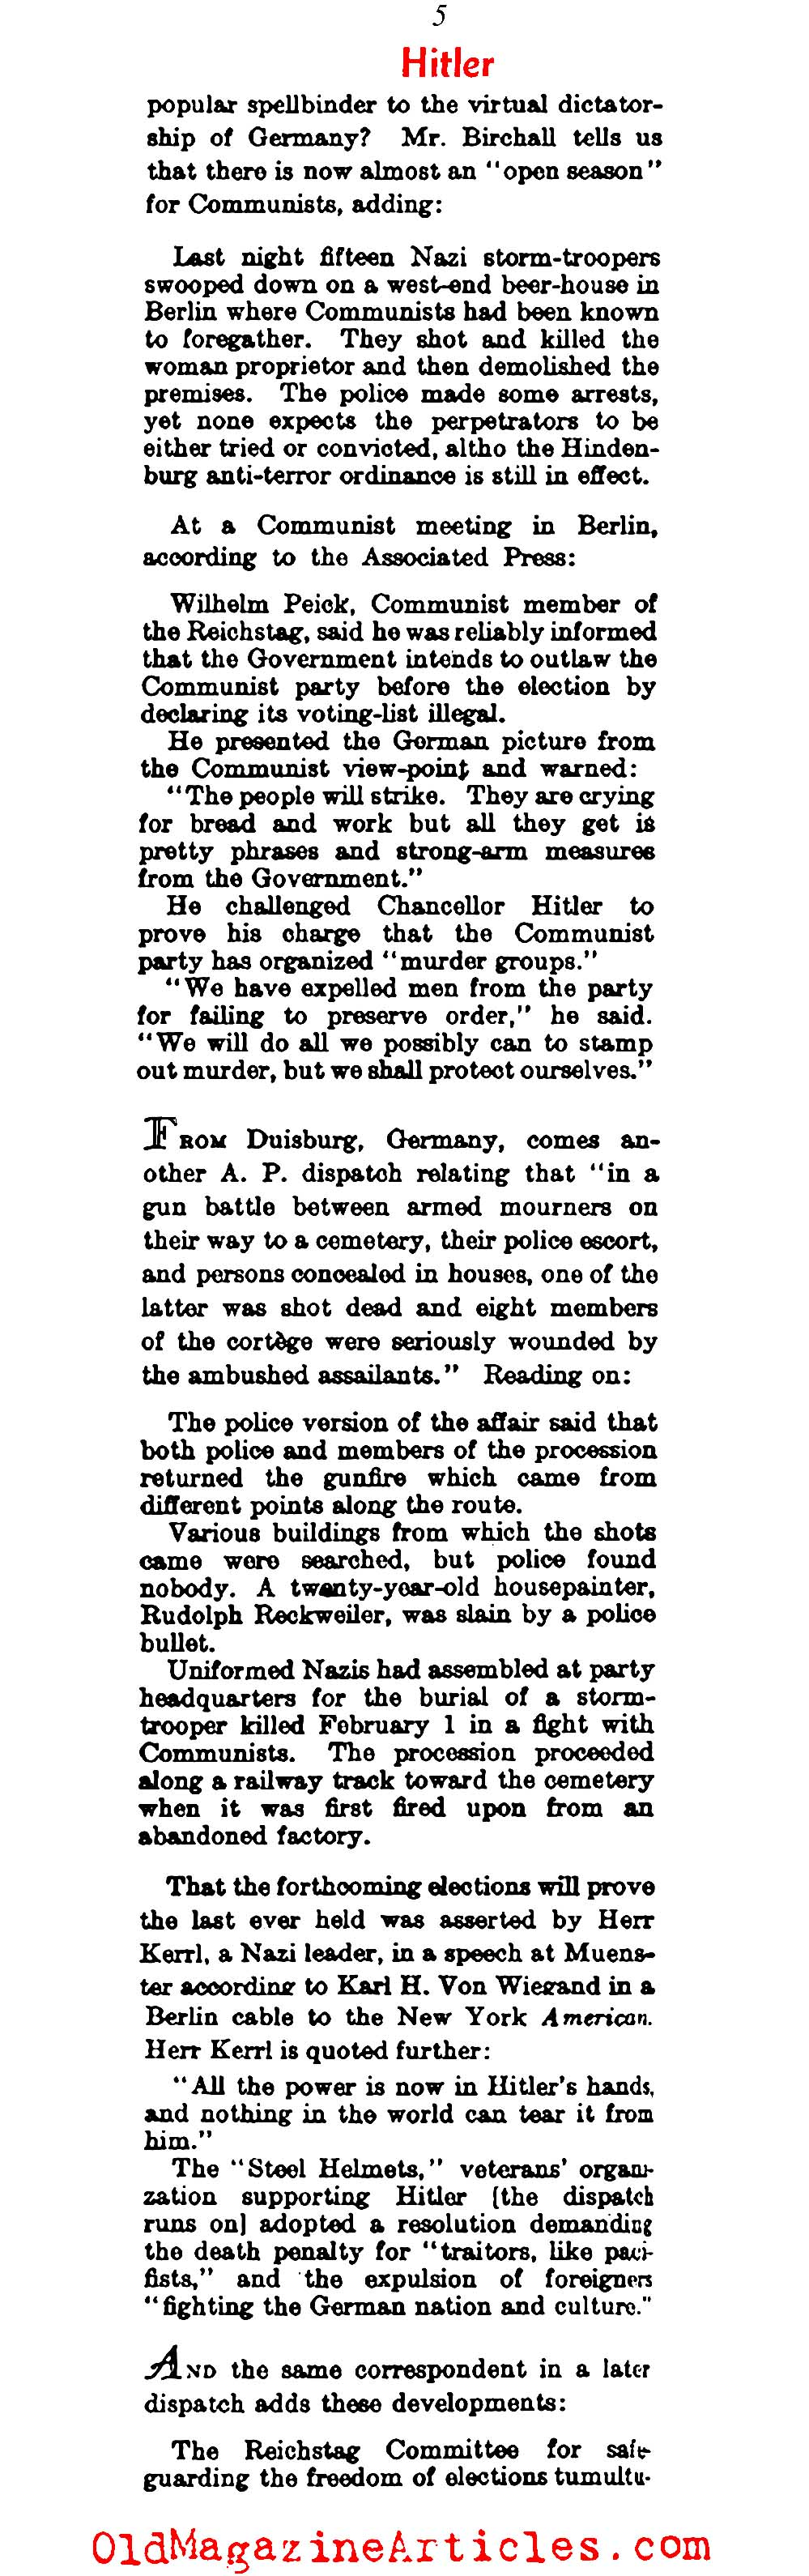 From the Beer Hall Putsch and Beyond (Literary Digest, 1933)